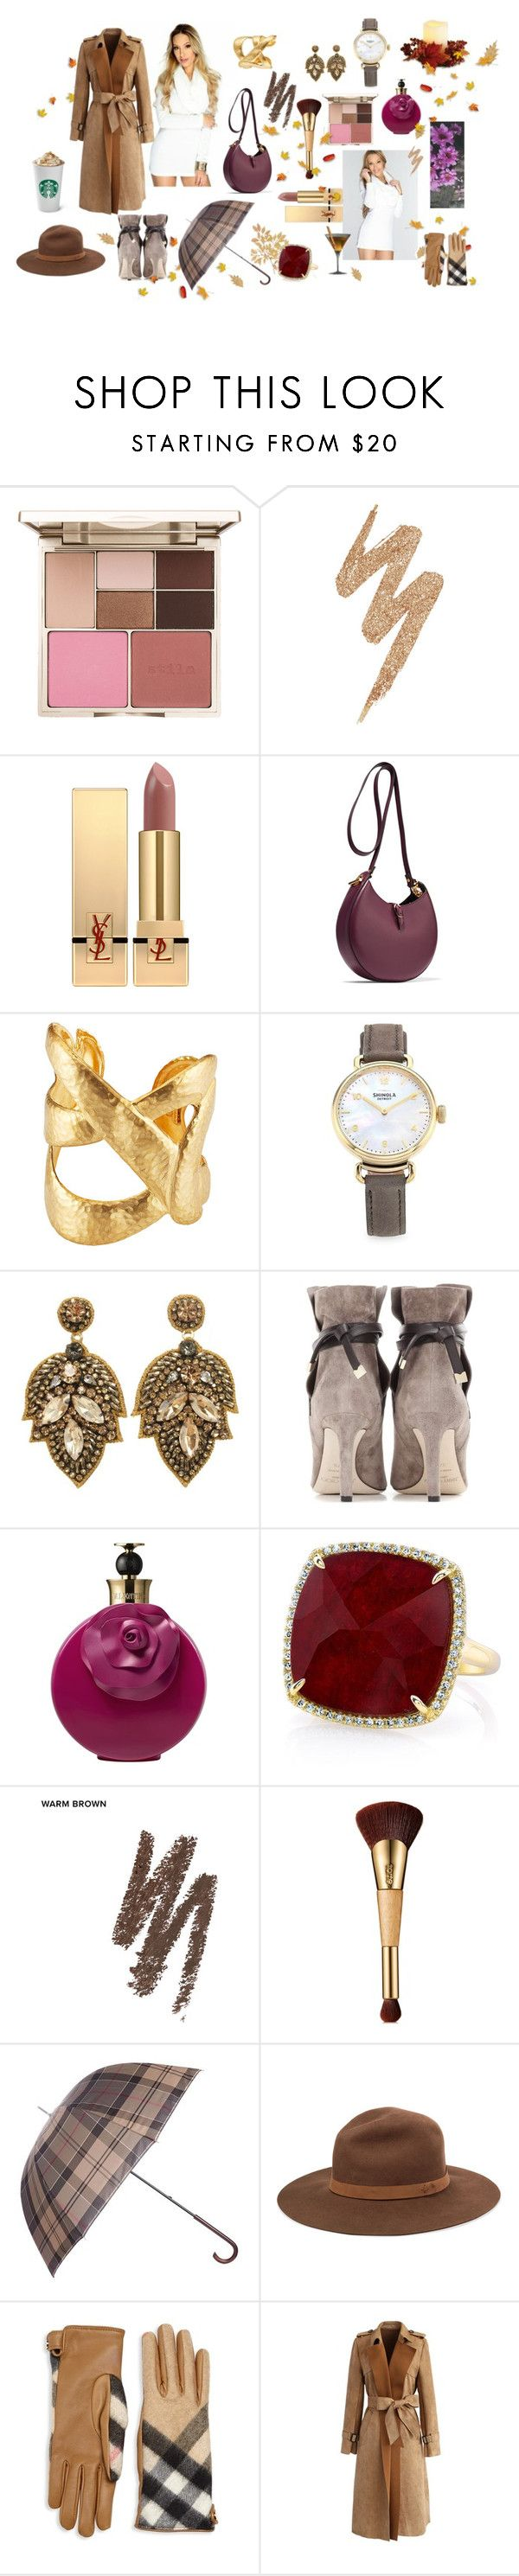 """Cashmere mini dress. Cute and Cozy  Fab Chic"" by mariyushka on Polyvore featuring Stila, Urban Decay, Yves Saint Laurent, Loewe, Kenneth Jay Lane, Shinola, Jimmy Choo, Valentino, Anne Sisteron and tarte"